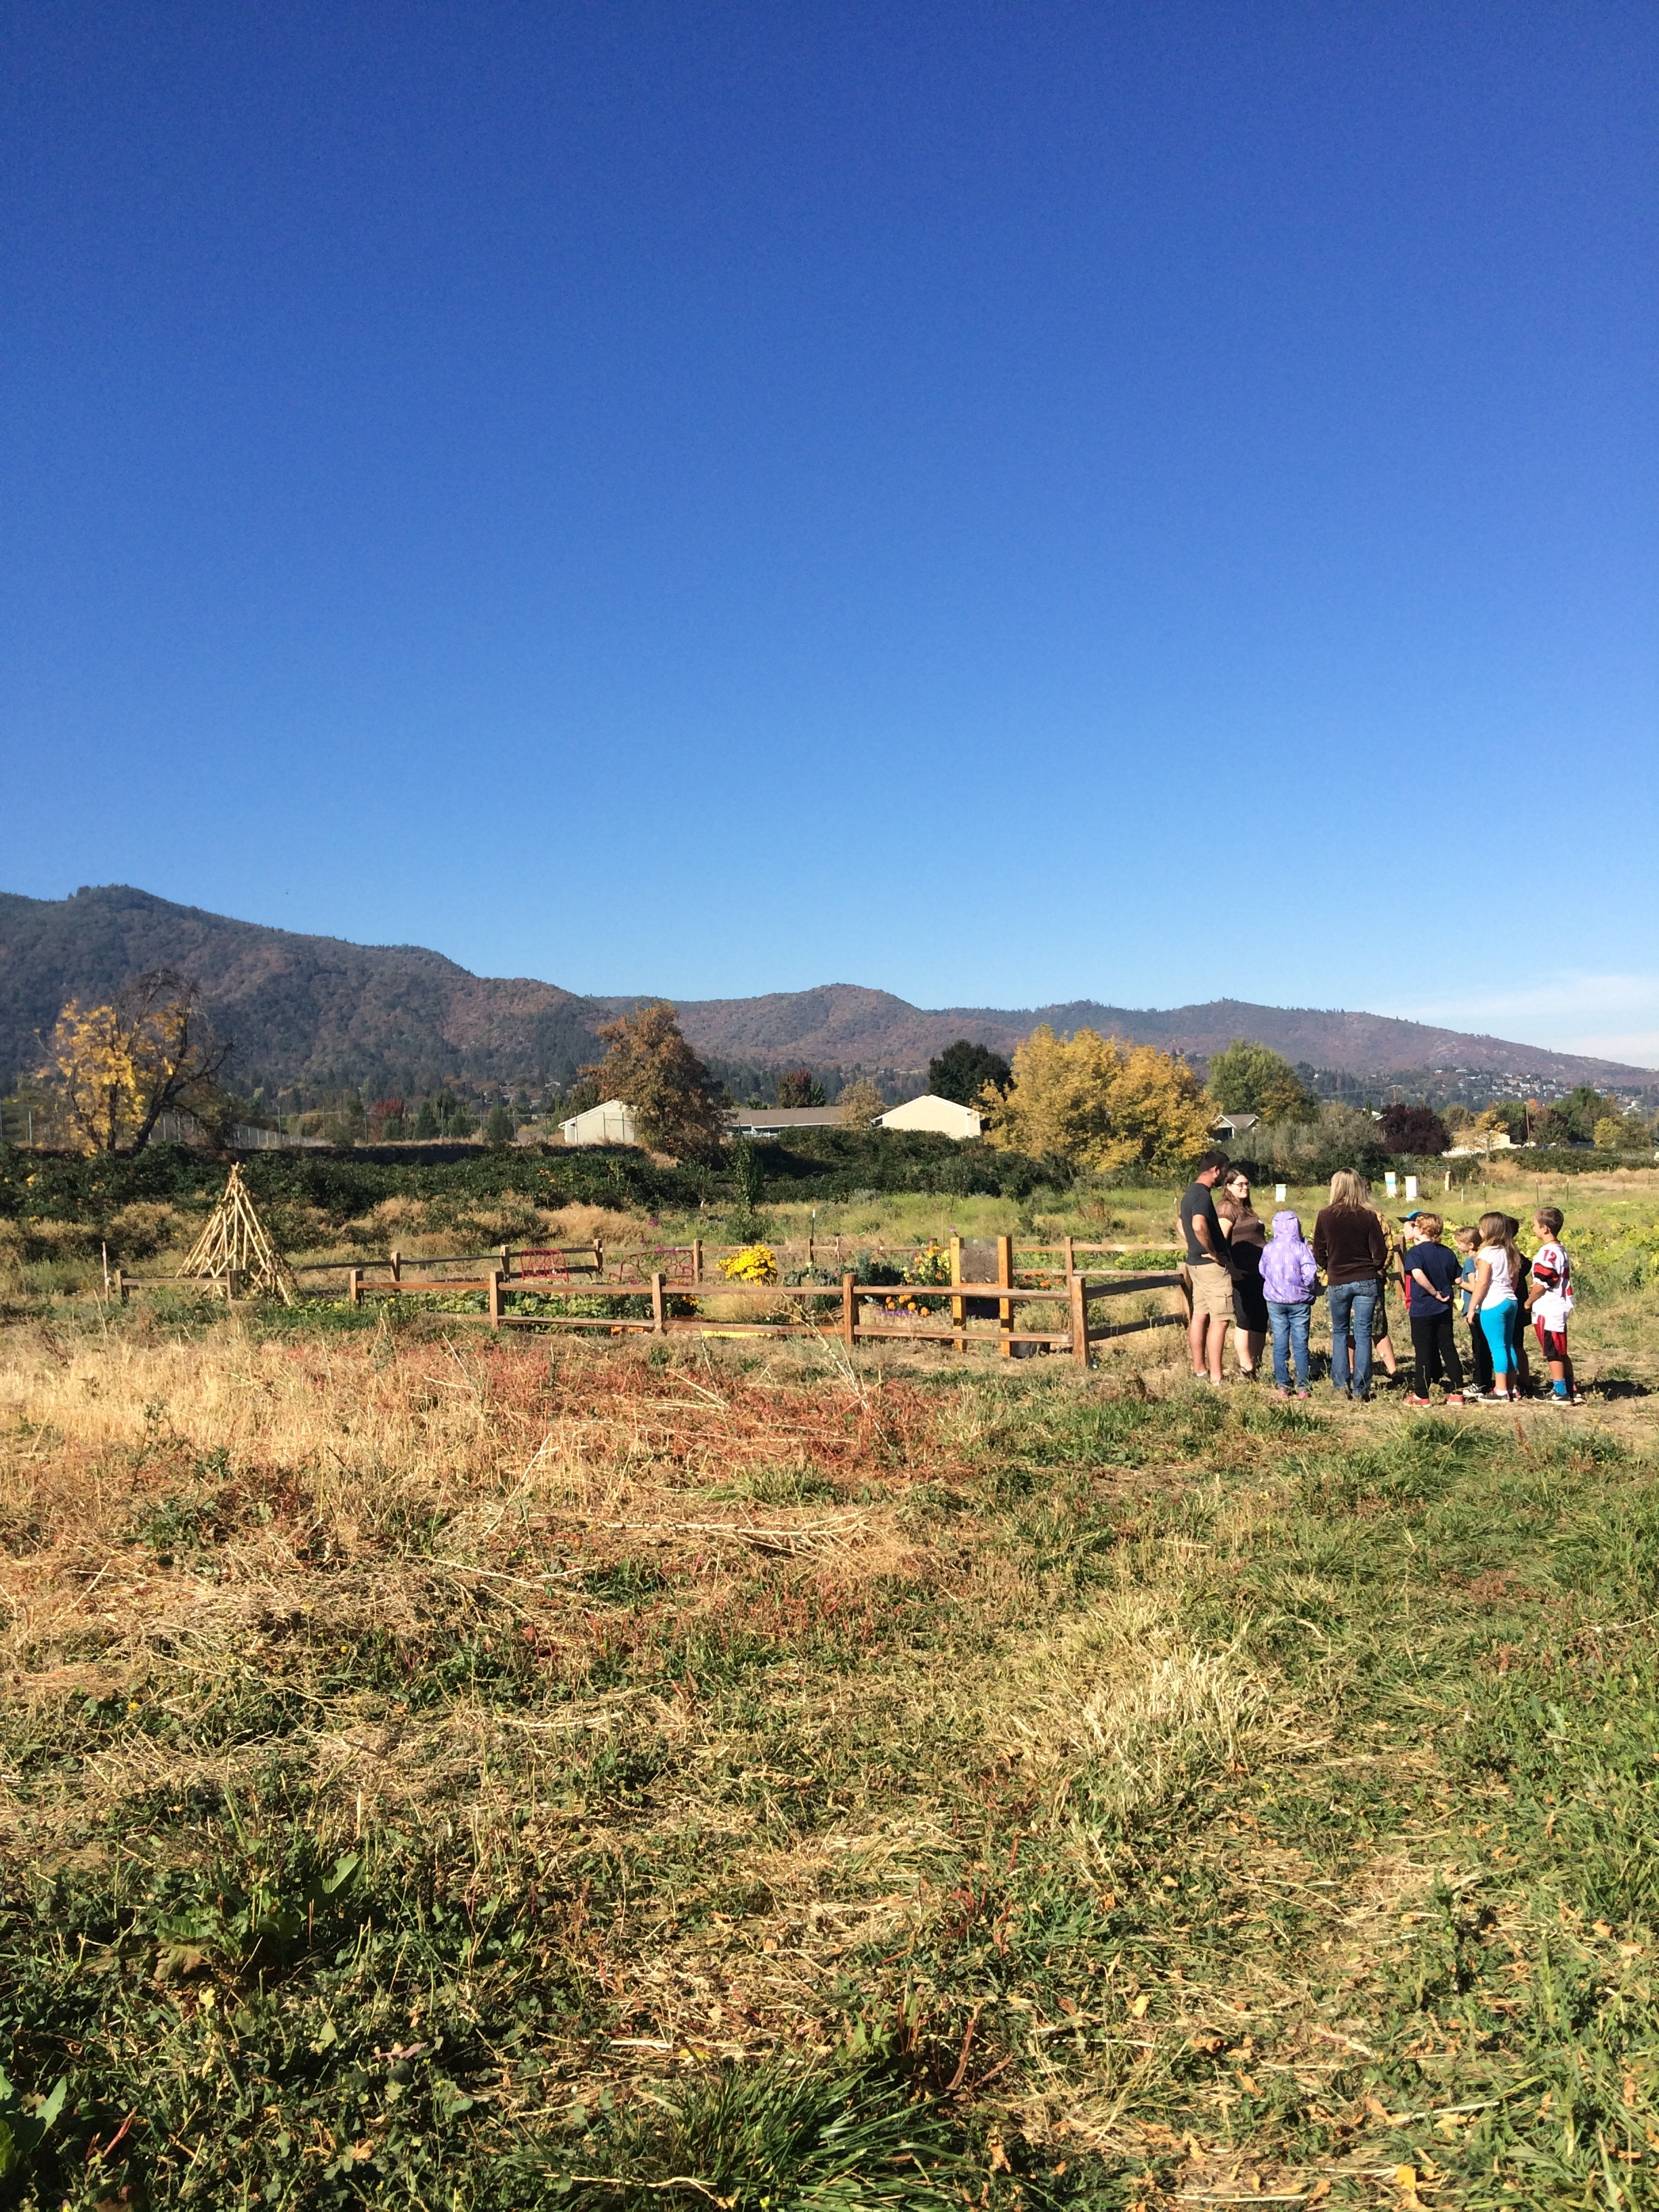 Students get instructions before exploring things to gather on the farm